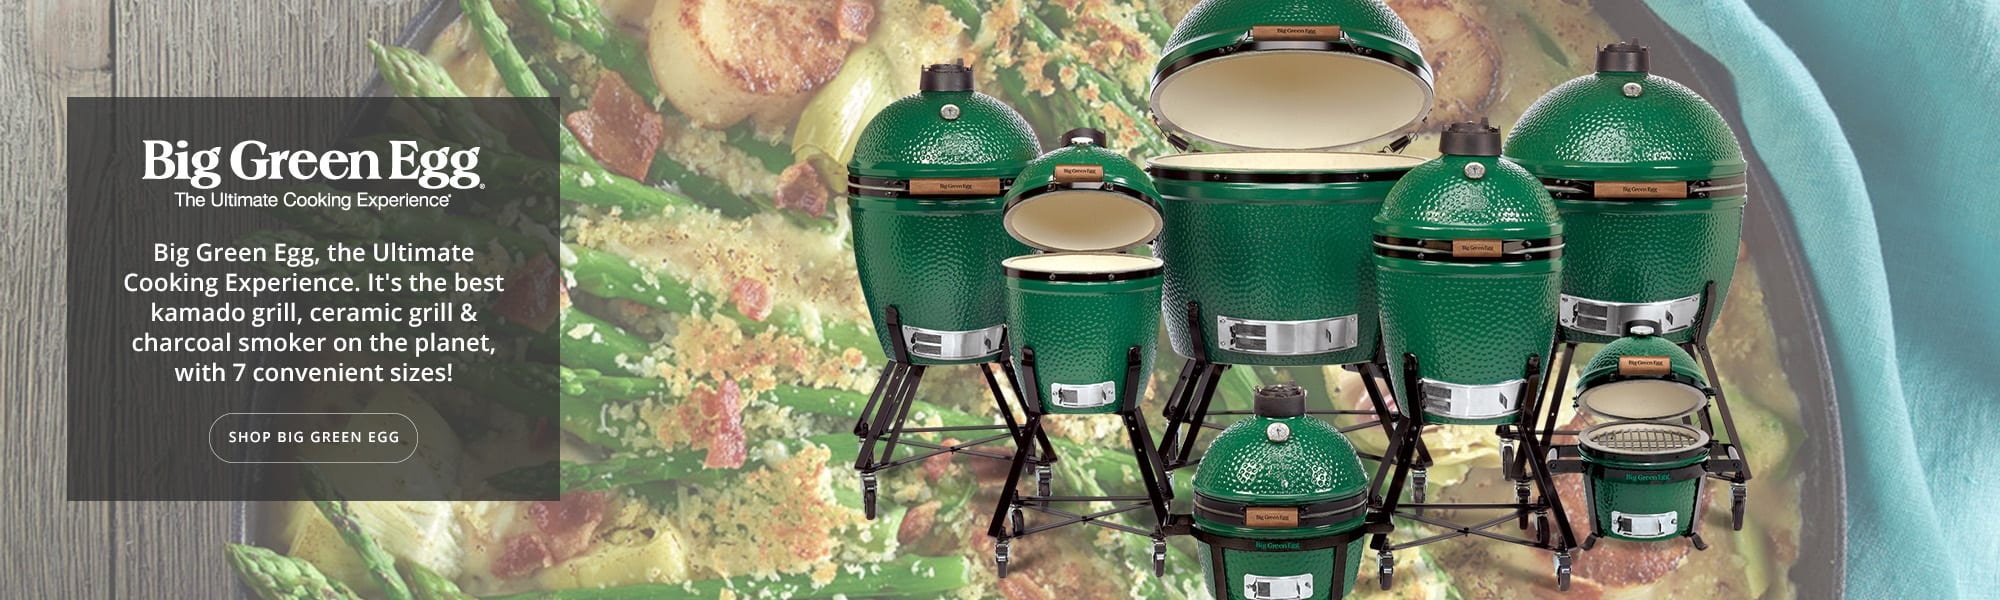 Big Green Egg Banner